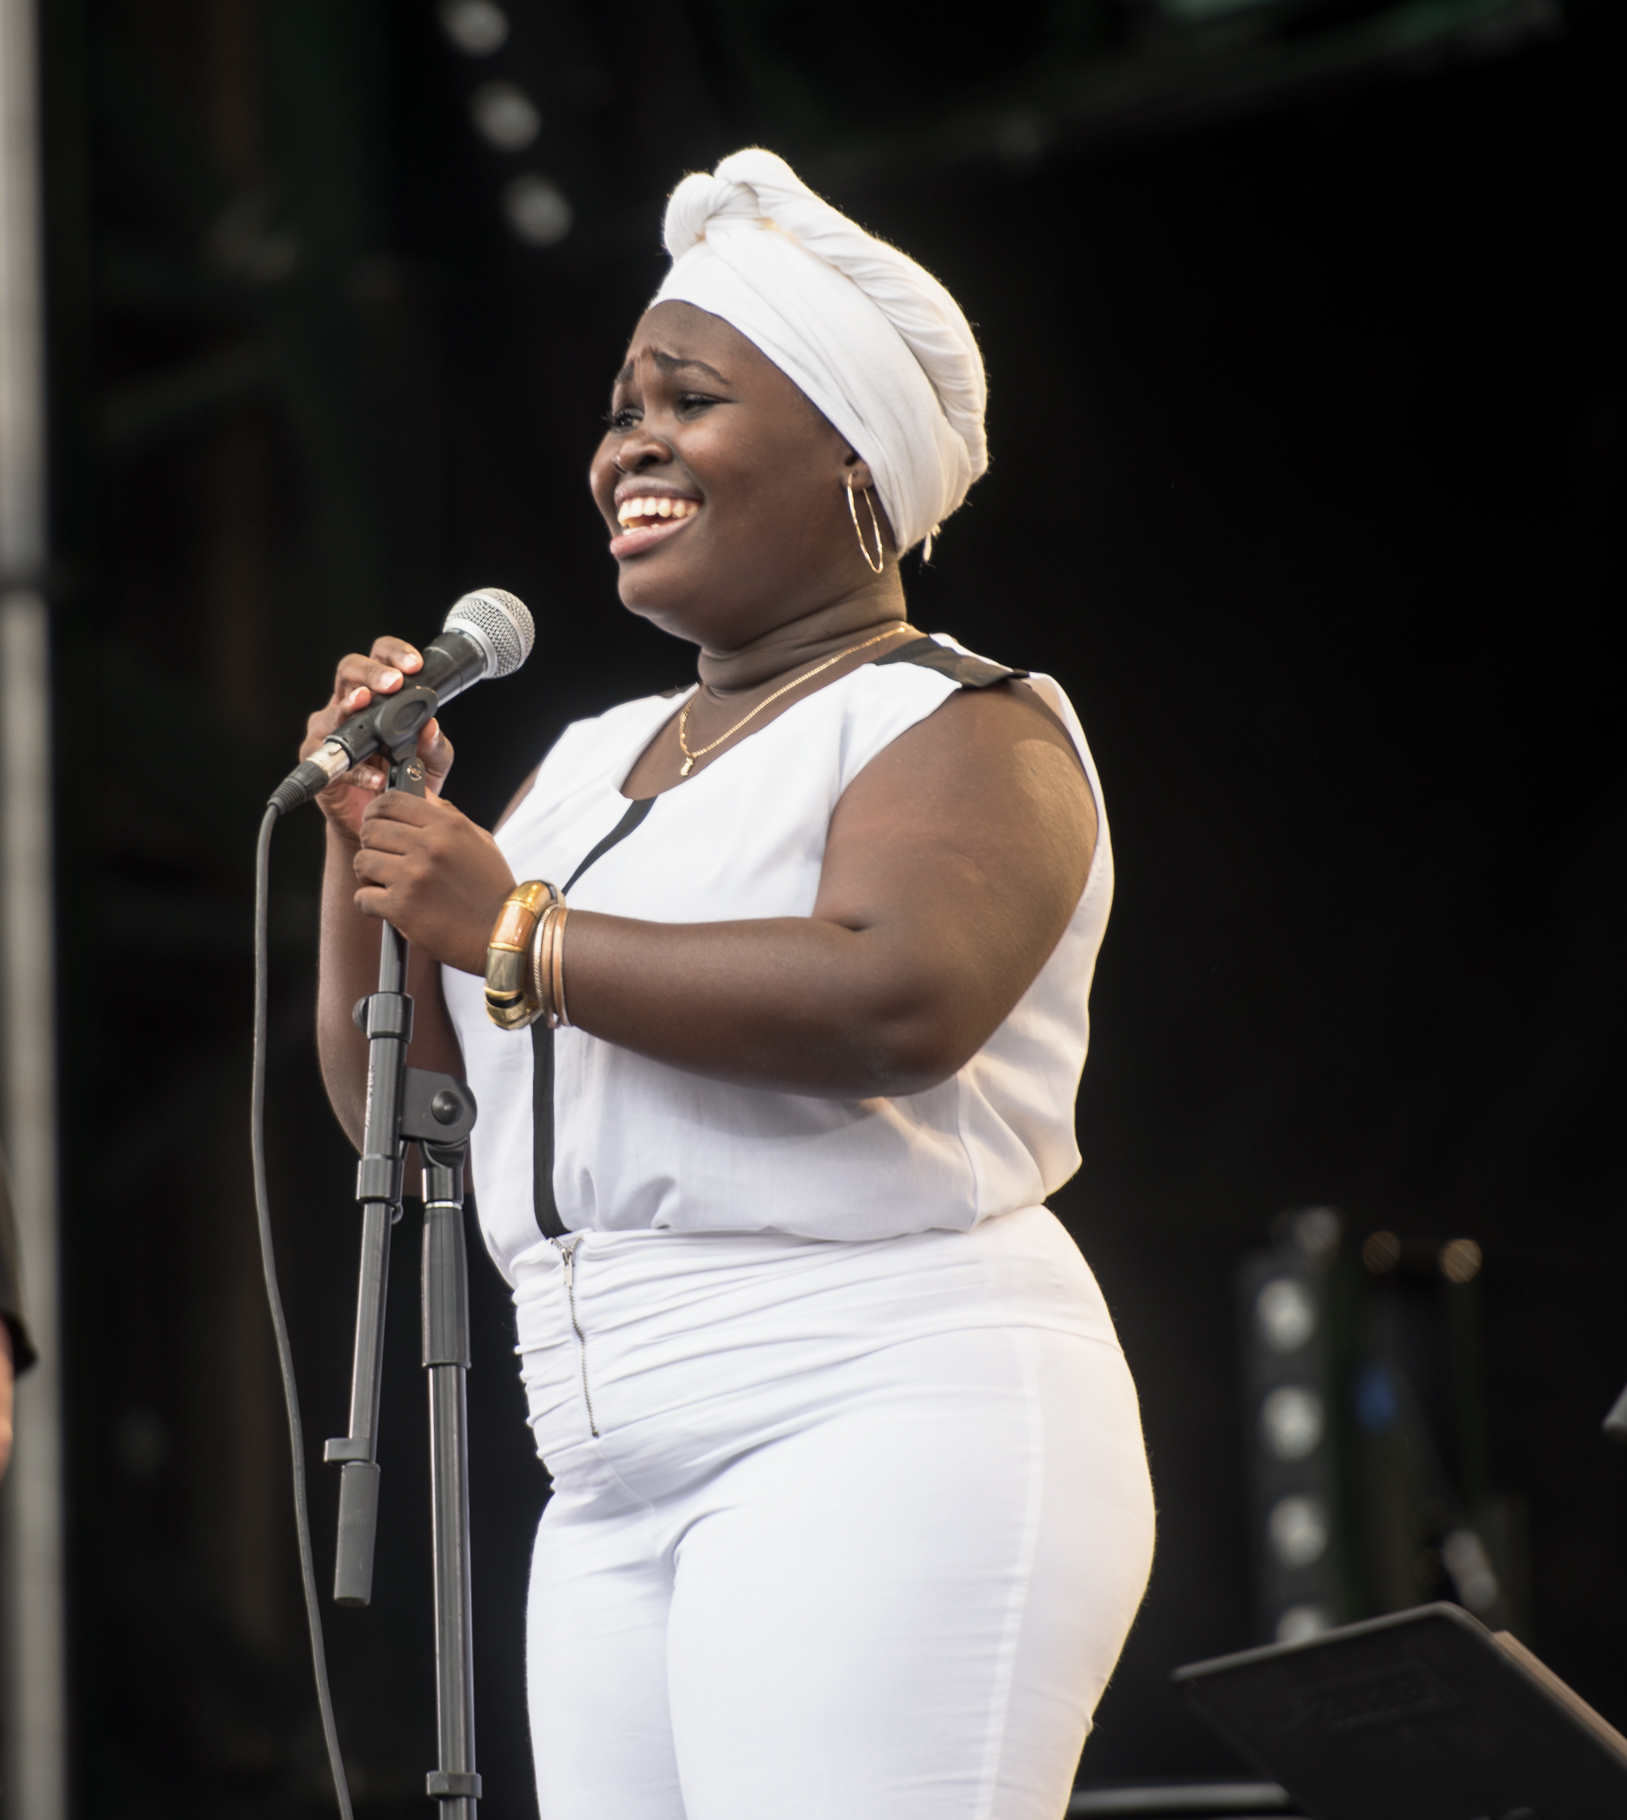 Daymé Arocena With Jane Bunnett And Macqueque At The Montreal International Jazz Festival 2015